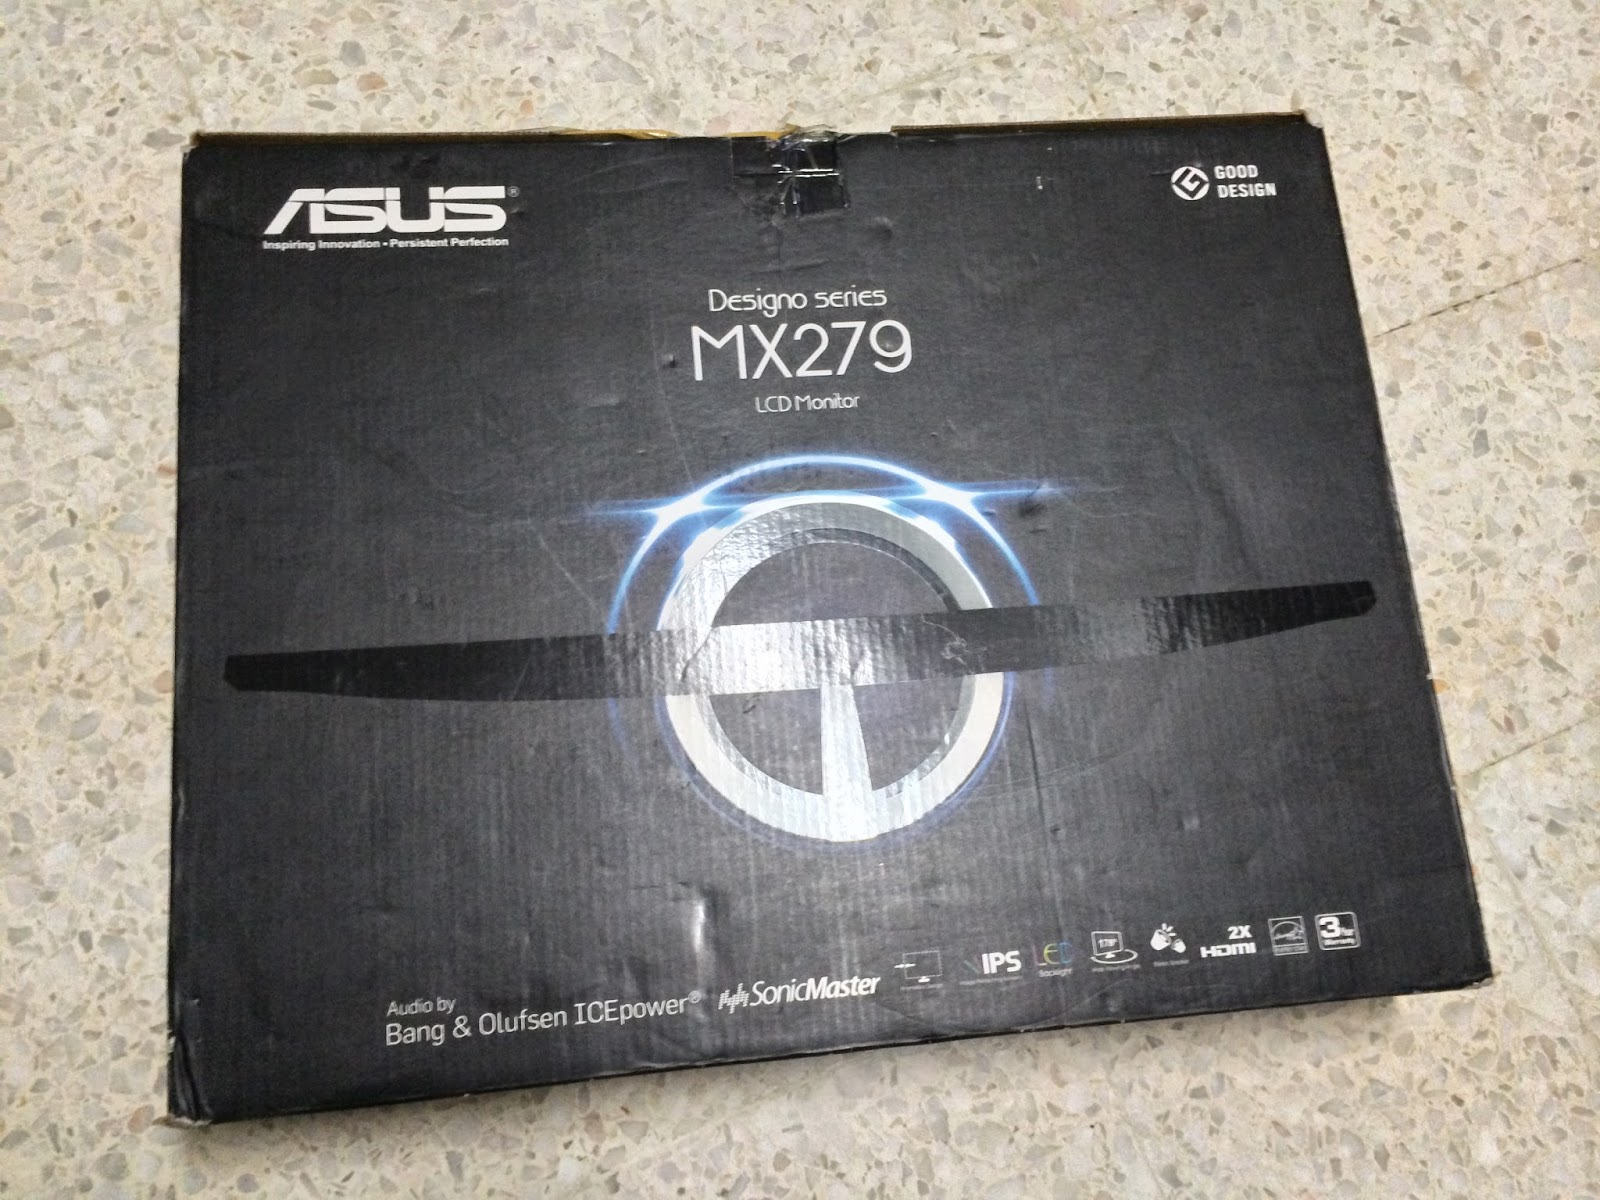 Unboxing & Review: ASUS MX279H Designo Series LCD Monitor 3